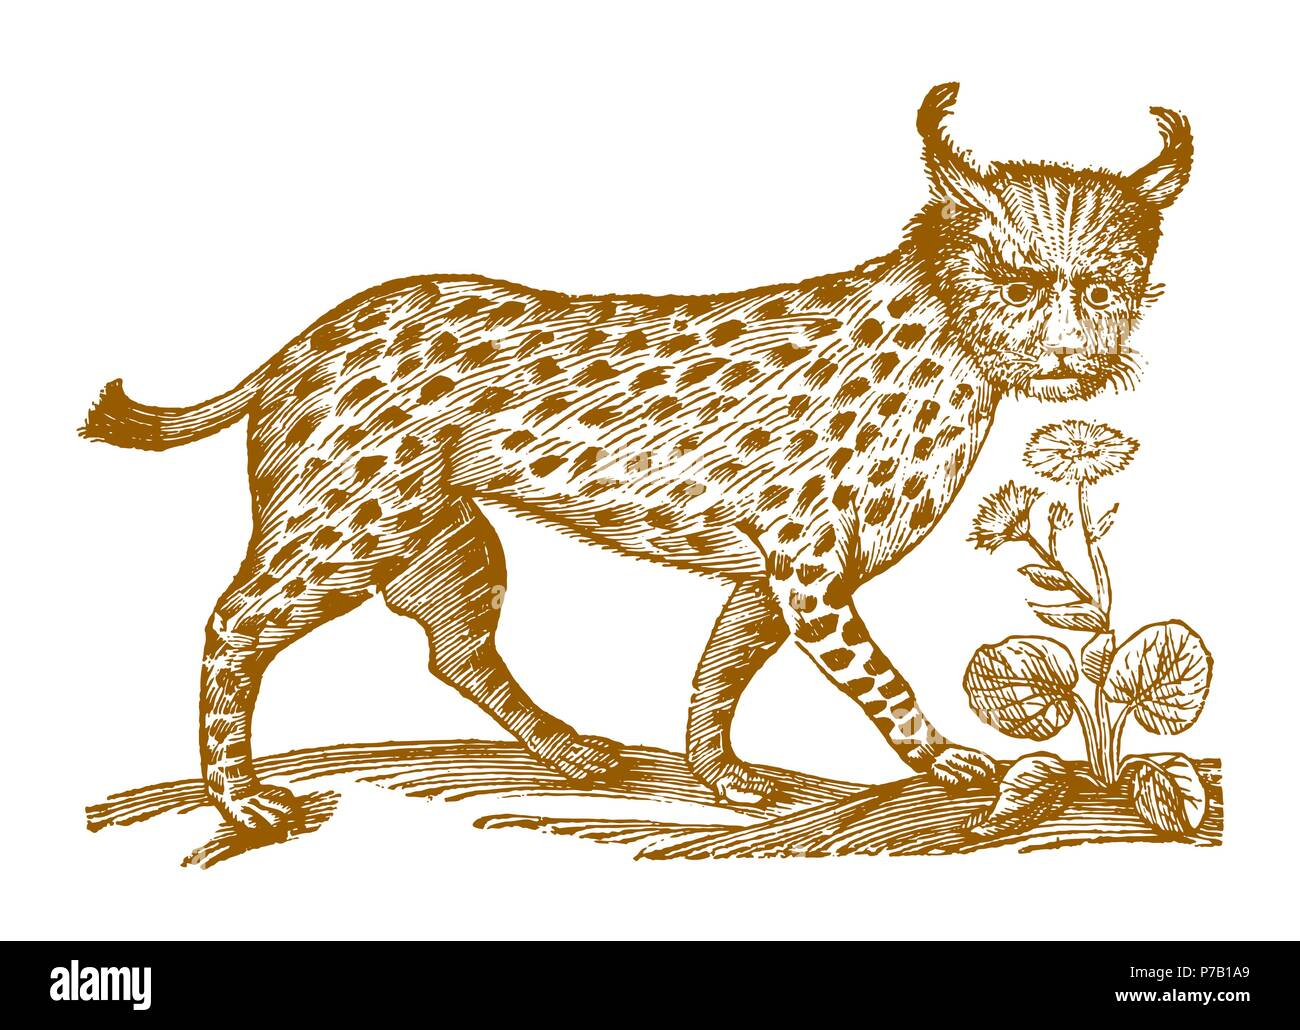 Eurasian lynx in profile view. Illustration after a historic woodcut engraving from the 17th century - Stock Image